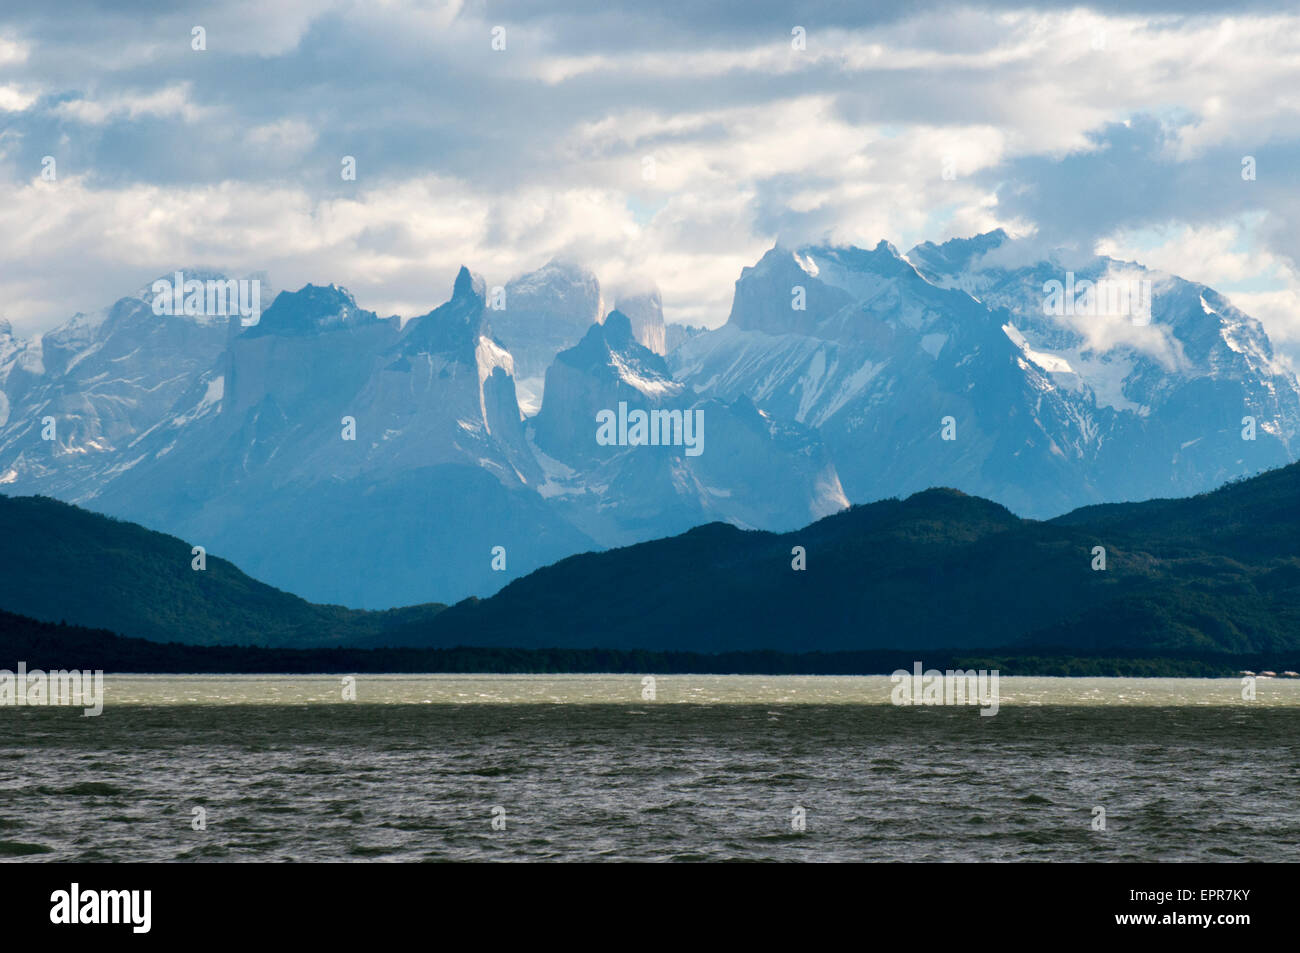 Los Cuernos del Paine (the Horns of Paine) seen from Fiordo Ultima Esperanza, Patagonia, Chile - Stock Image